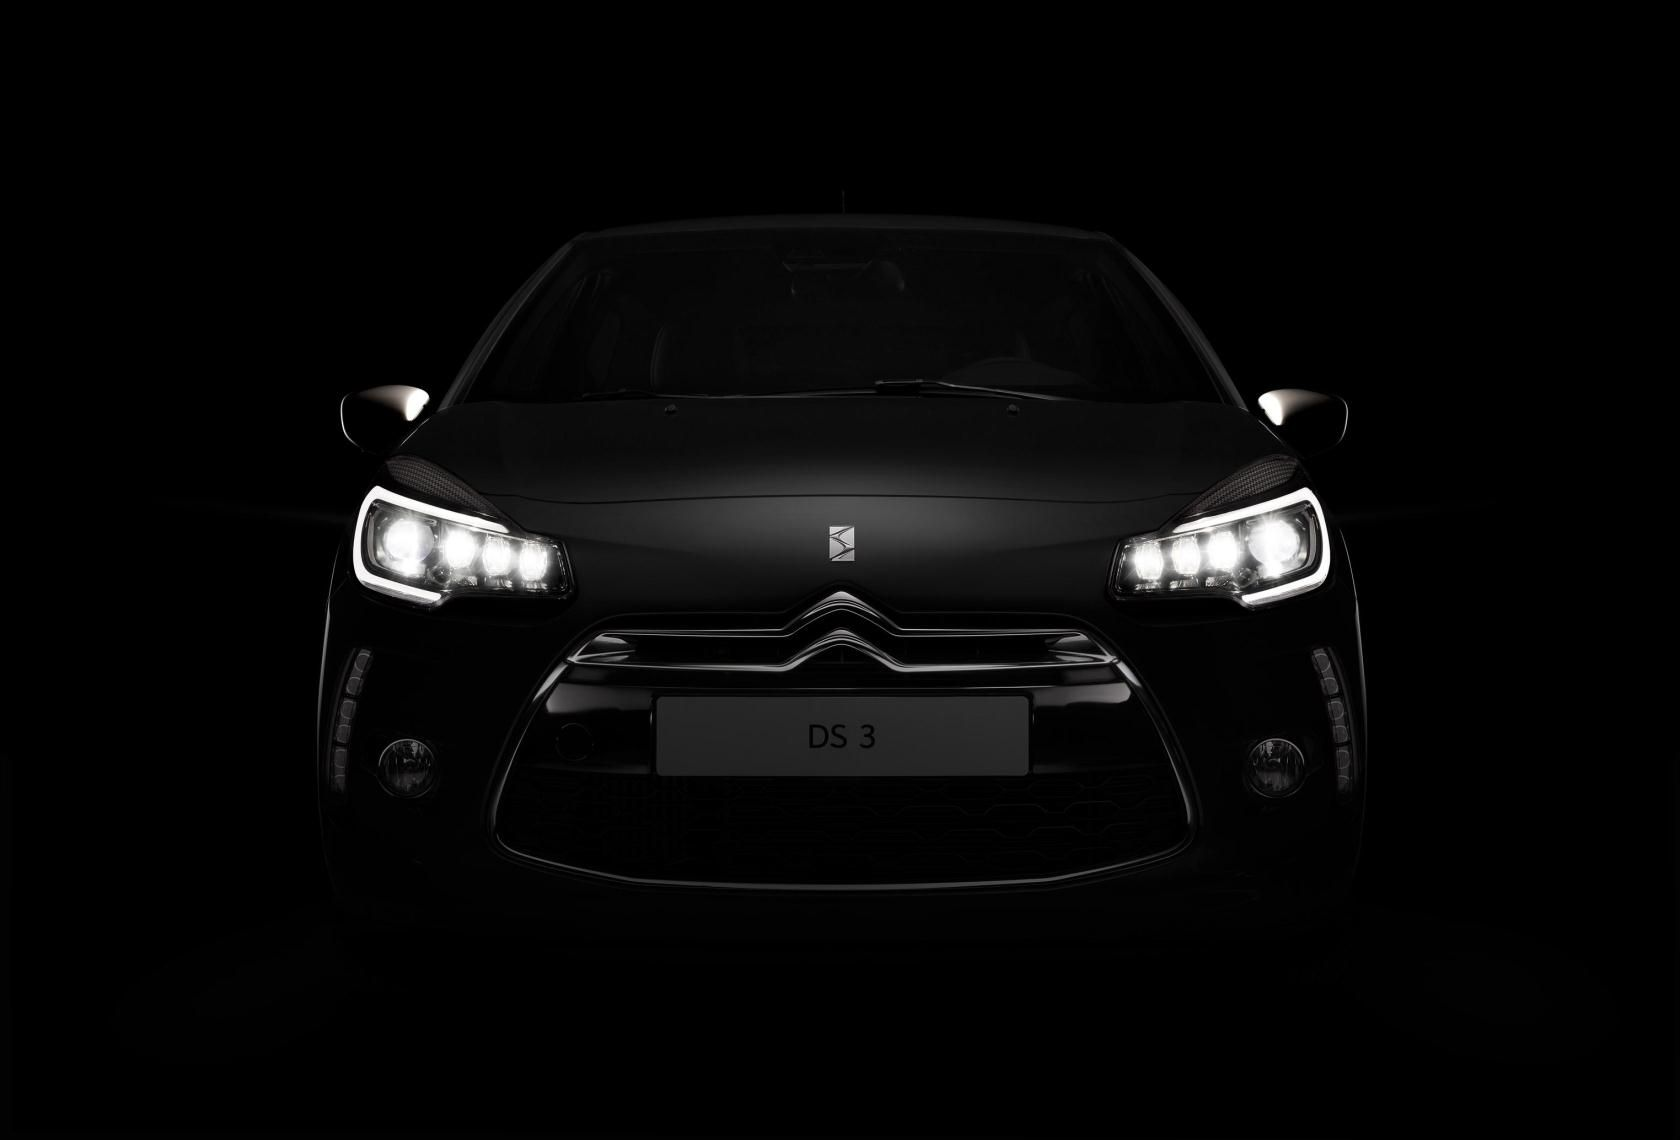 Inspired By The Conceptcar Numero9 And Wildrubis Here Is The New Ds3 New Xenon Full Led Signature